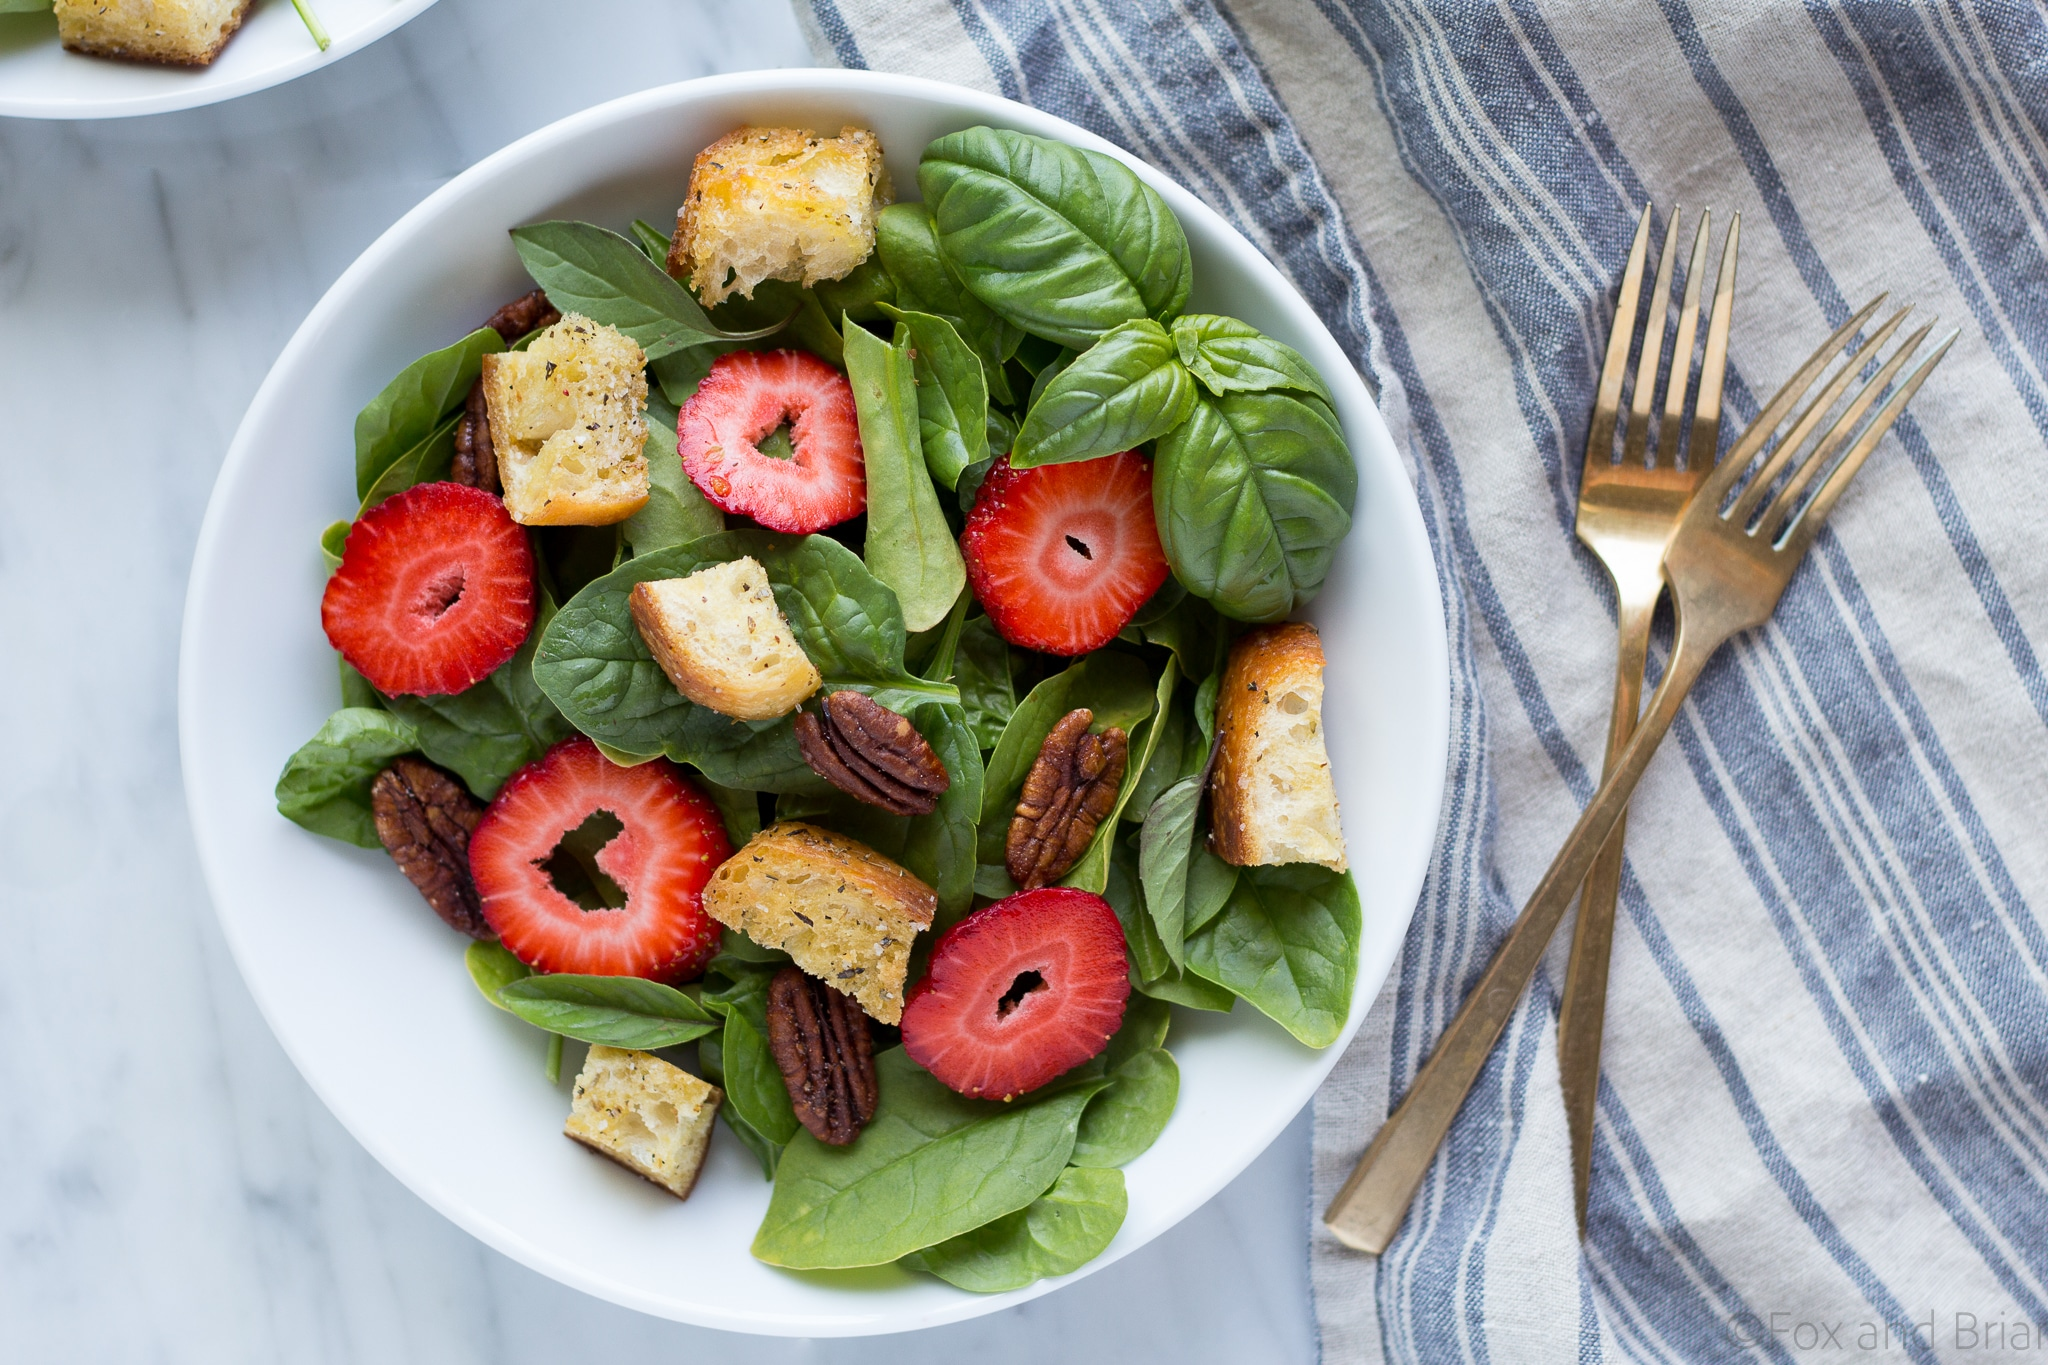 This Strawberry Basil Pecan Salad with Goat Cheese Dressing is a sweet and tangy summer salad bursting with fresh flavors and homemade croutons.